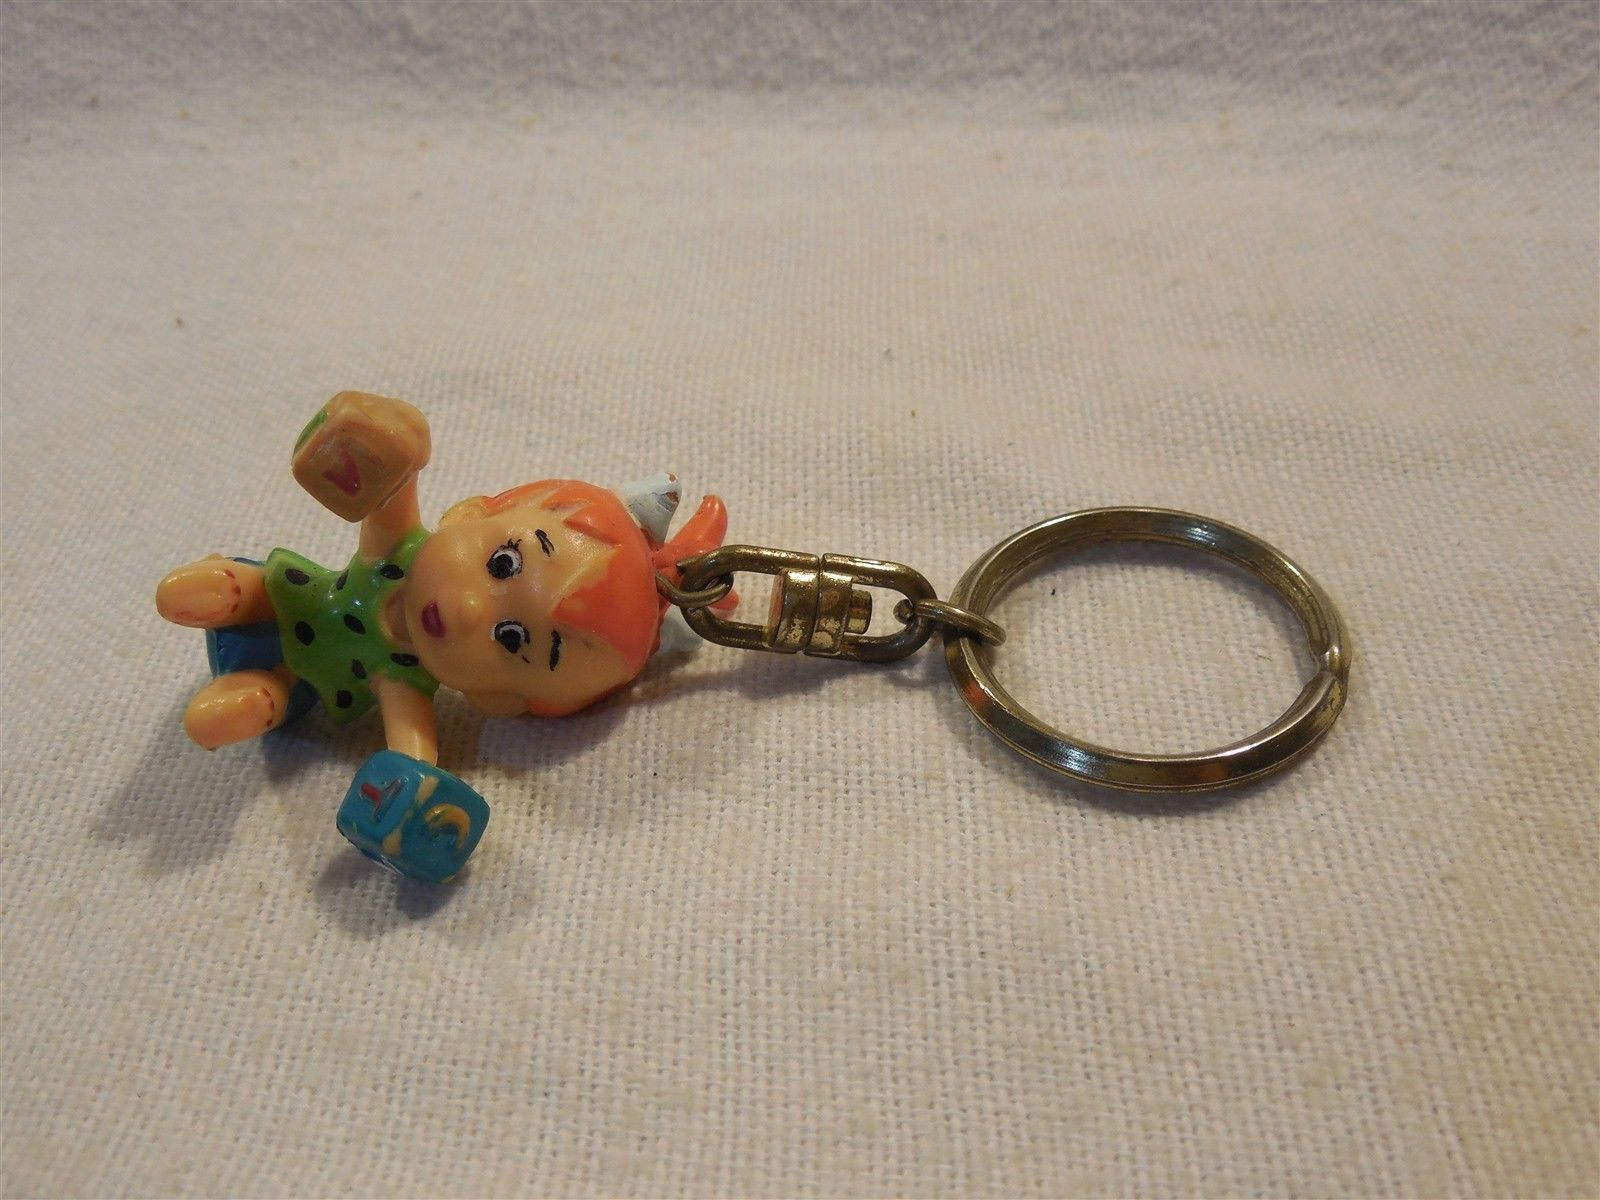 Flintstones 1994 Yarto Hard Plastic Pebbles Flintstone w/Blocks Key Chain